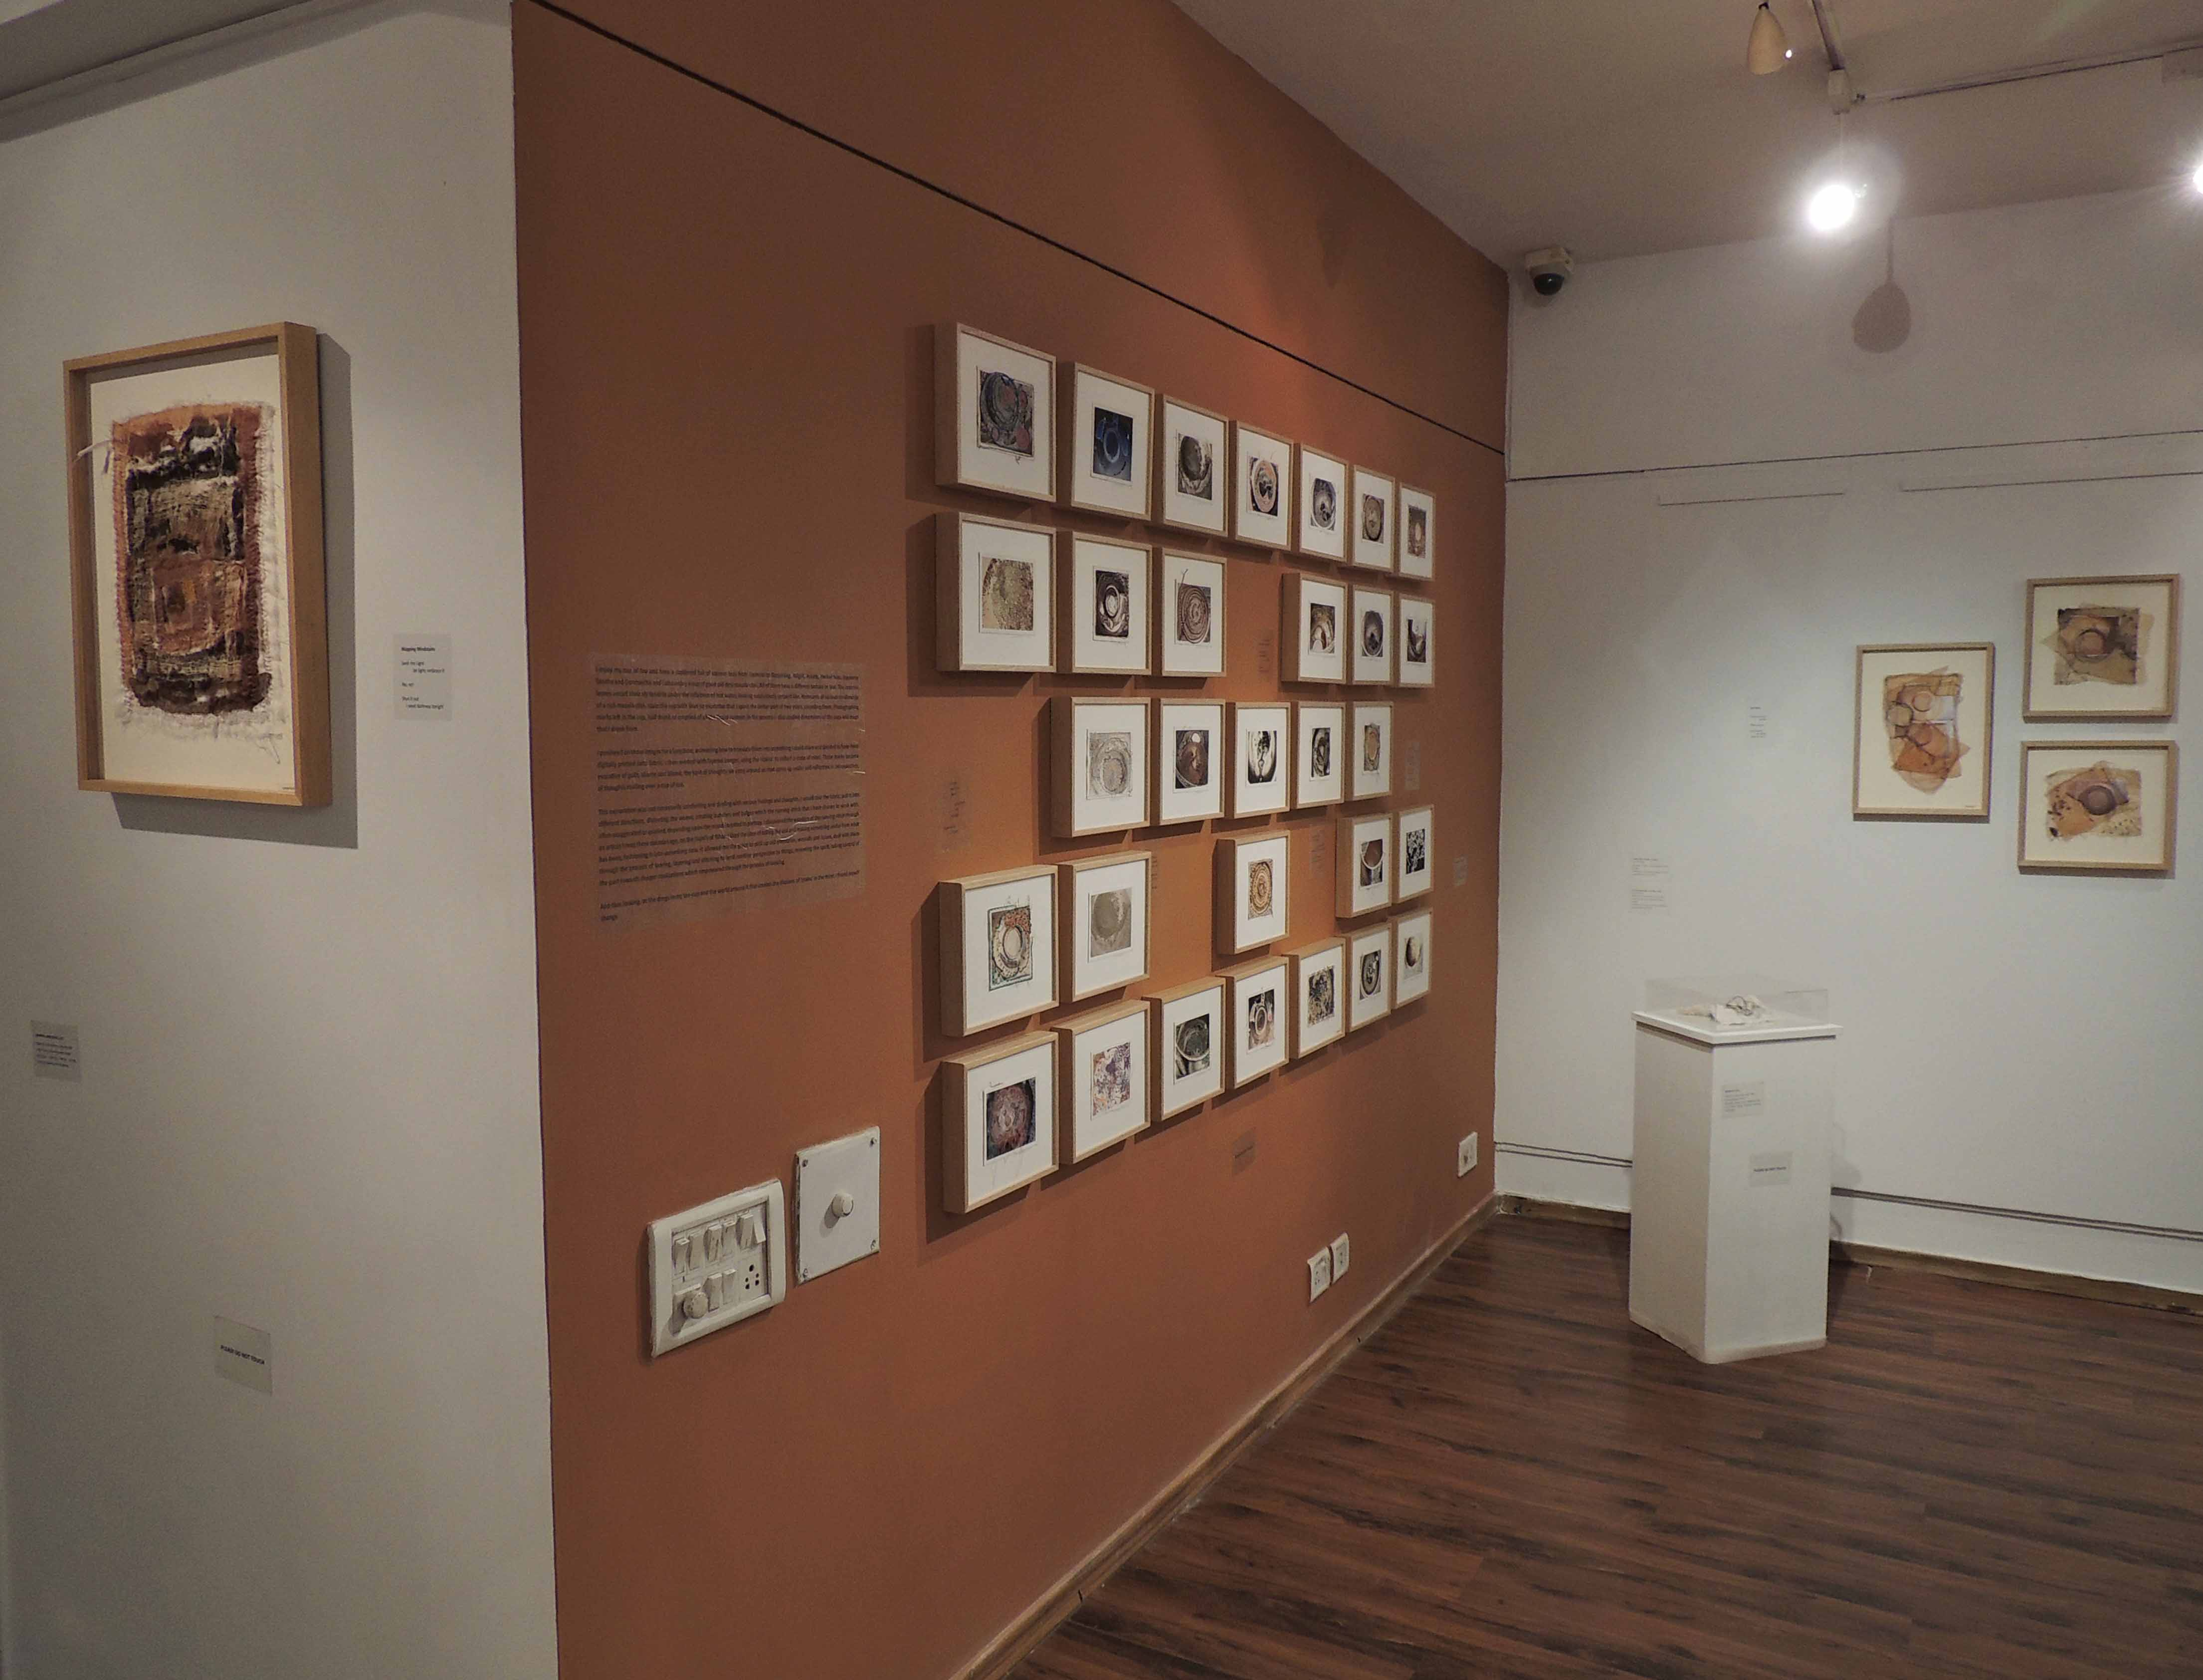 Image 14 : Display image of The Piercing Needle, Works in view: Left- Mapping Mindstains, Centre [on coloured wasll]The Universe in My Tea Cup [set of 30 works], Right: Wired Up, Far Right: A Careless Hand Poured [set of three works], Photo credit: gopika nath